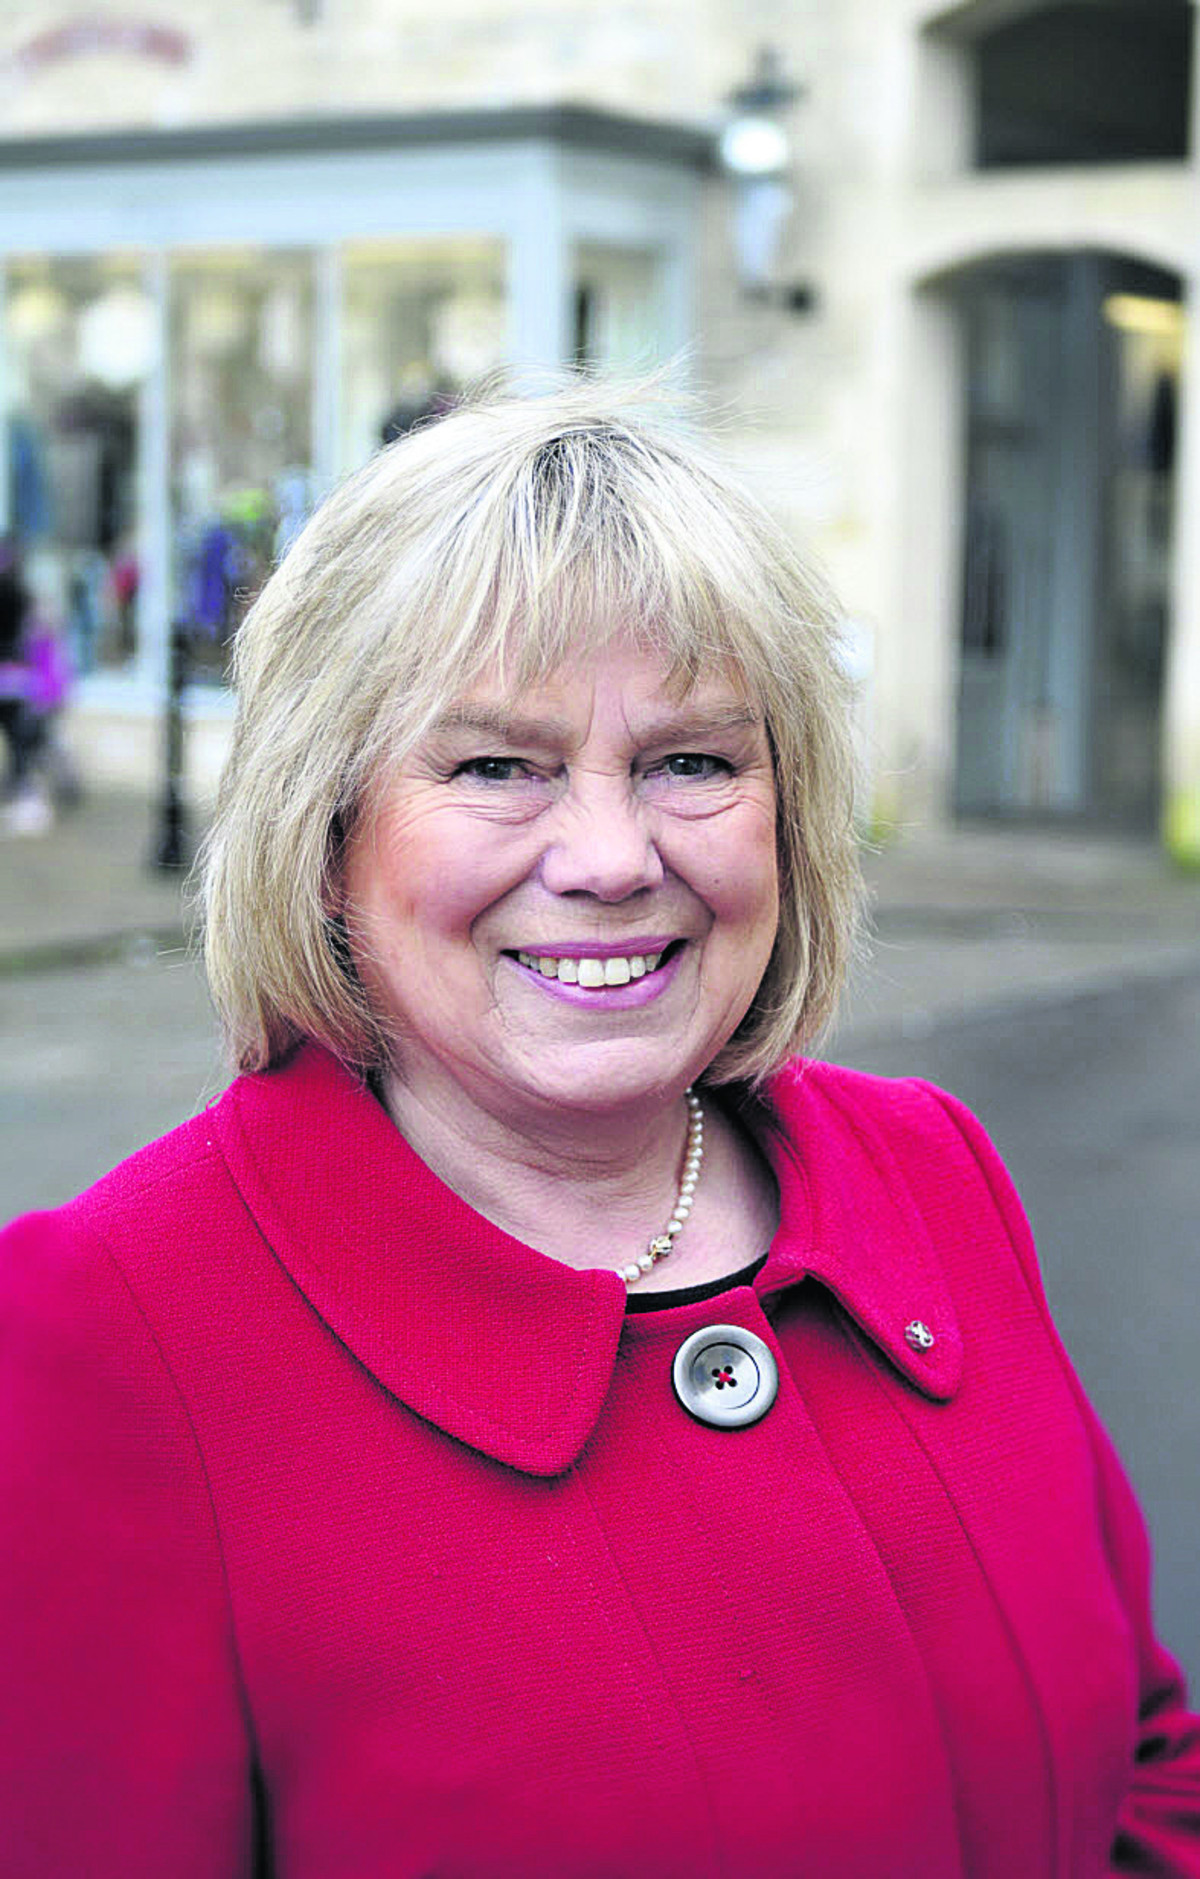 Wiltshire Council leader Jane Scott, has confirmed she will not take an allowance increase